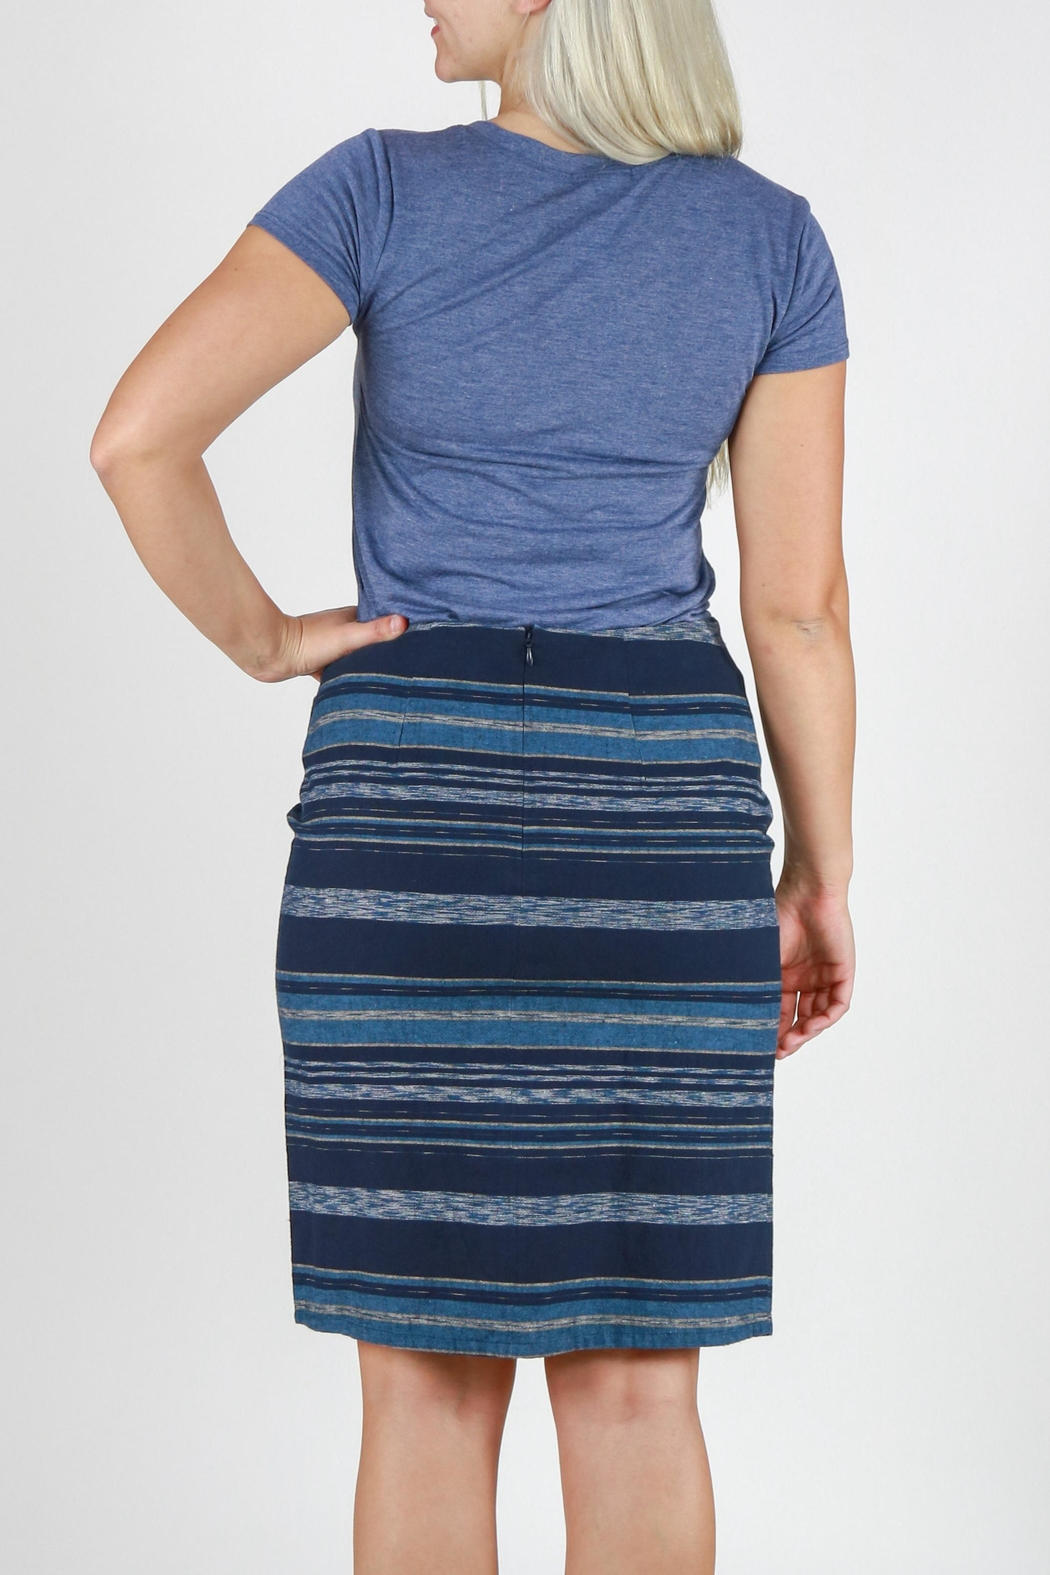 Pendleton River Crossover Skirt - Back Cropped Image